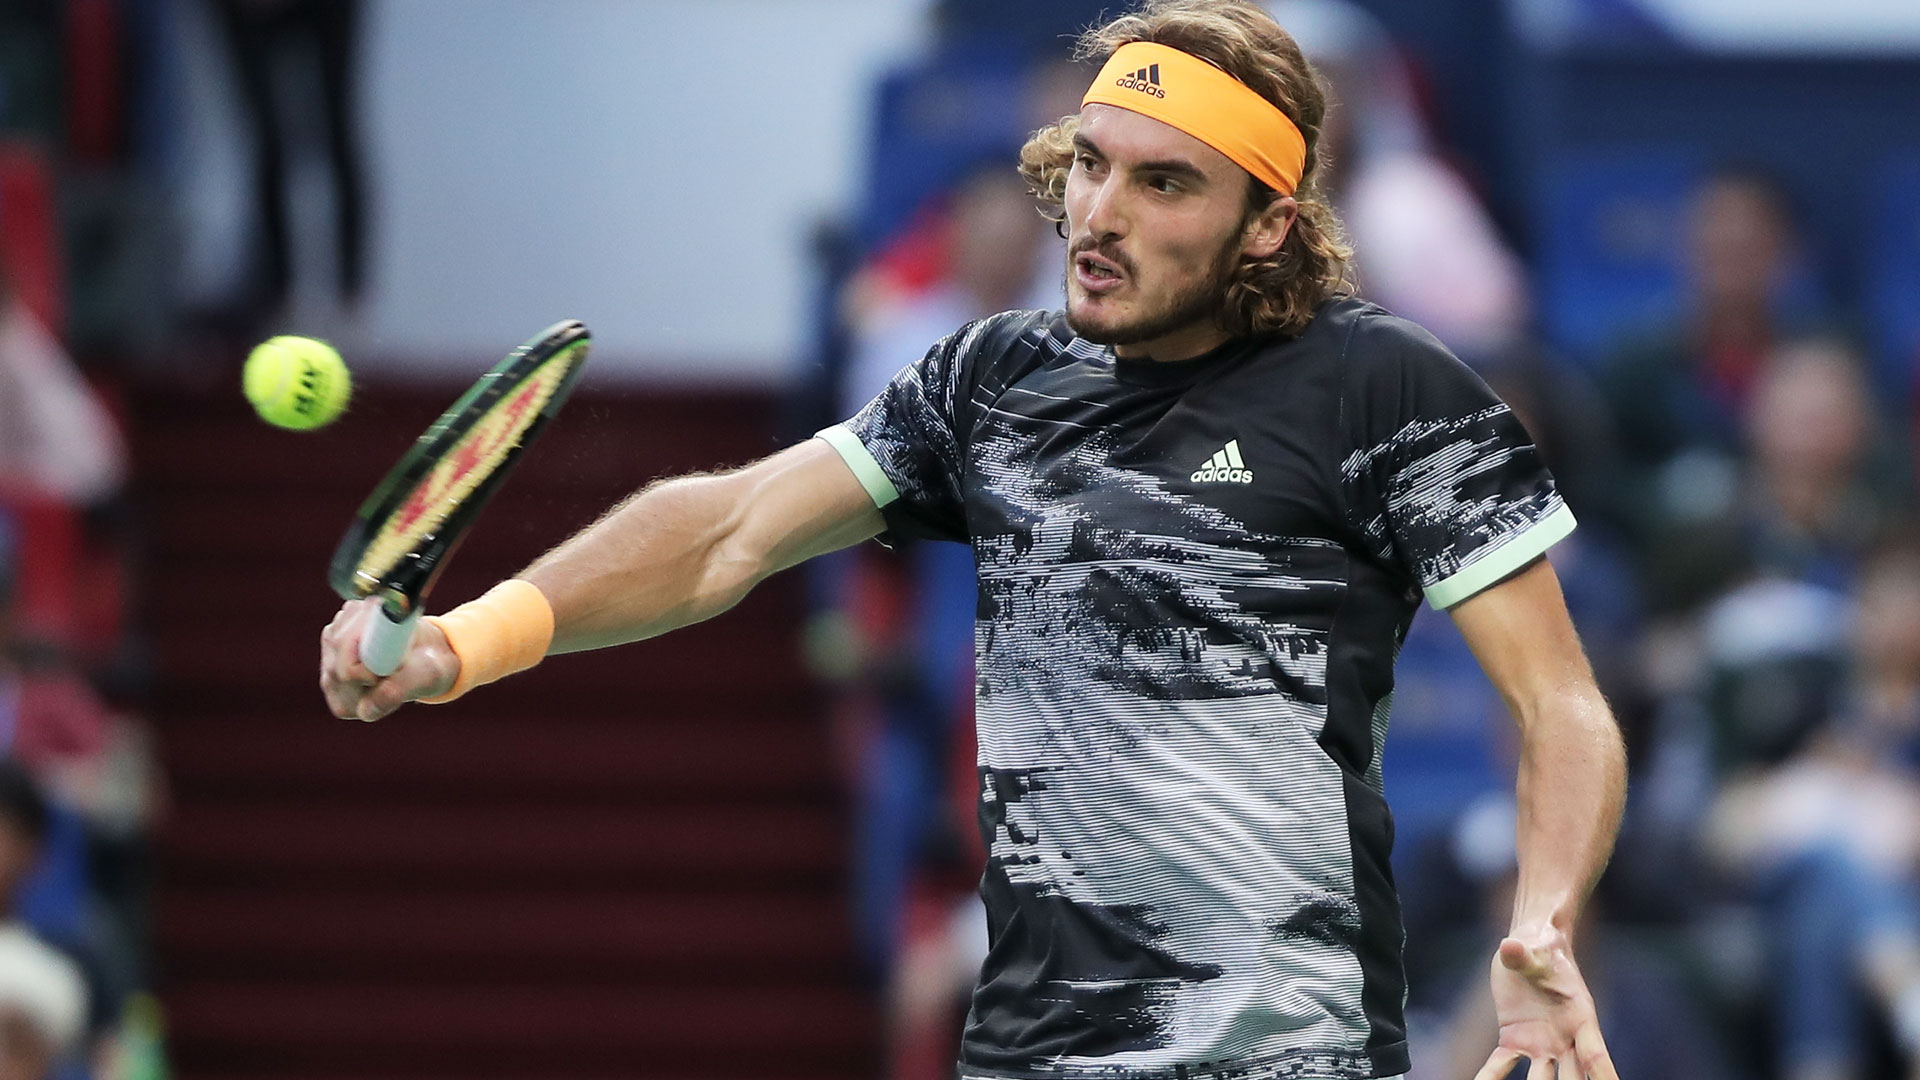 Stefanos Tsitsipas: Why First Round Loss Was 'The Best Thing